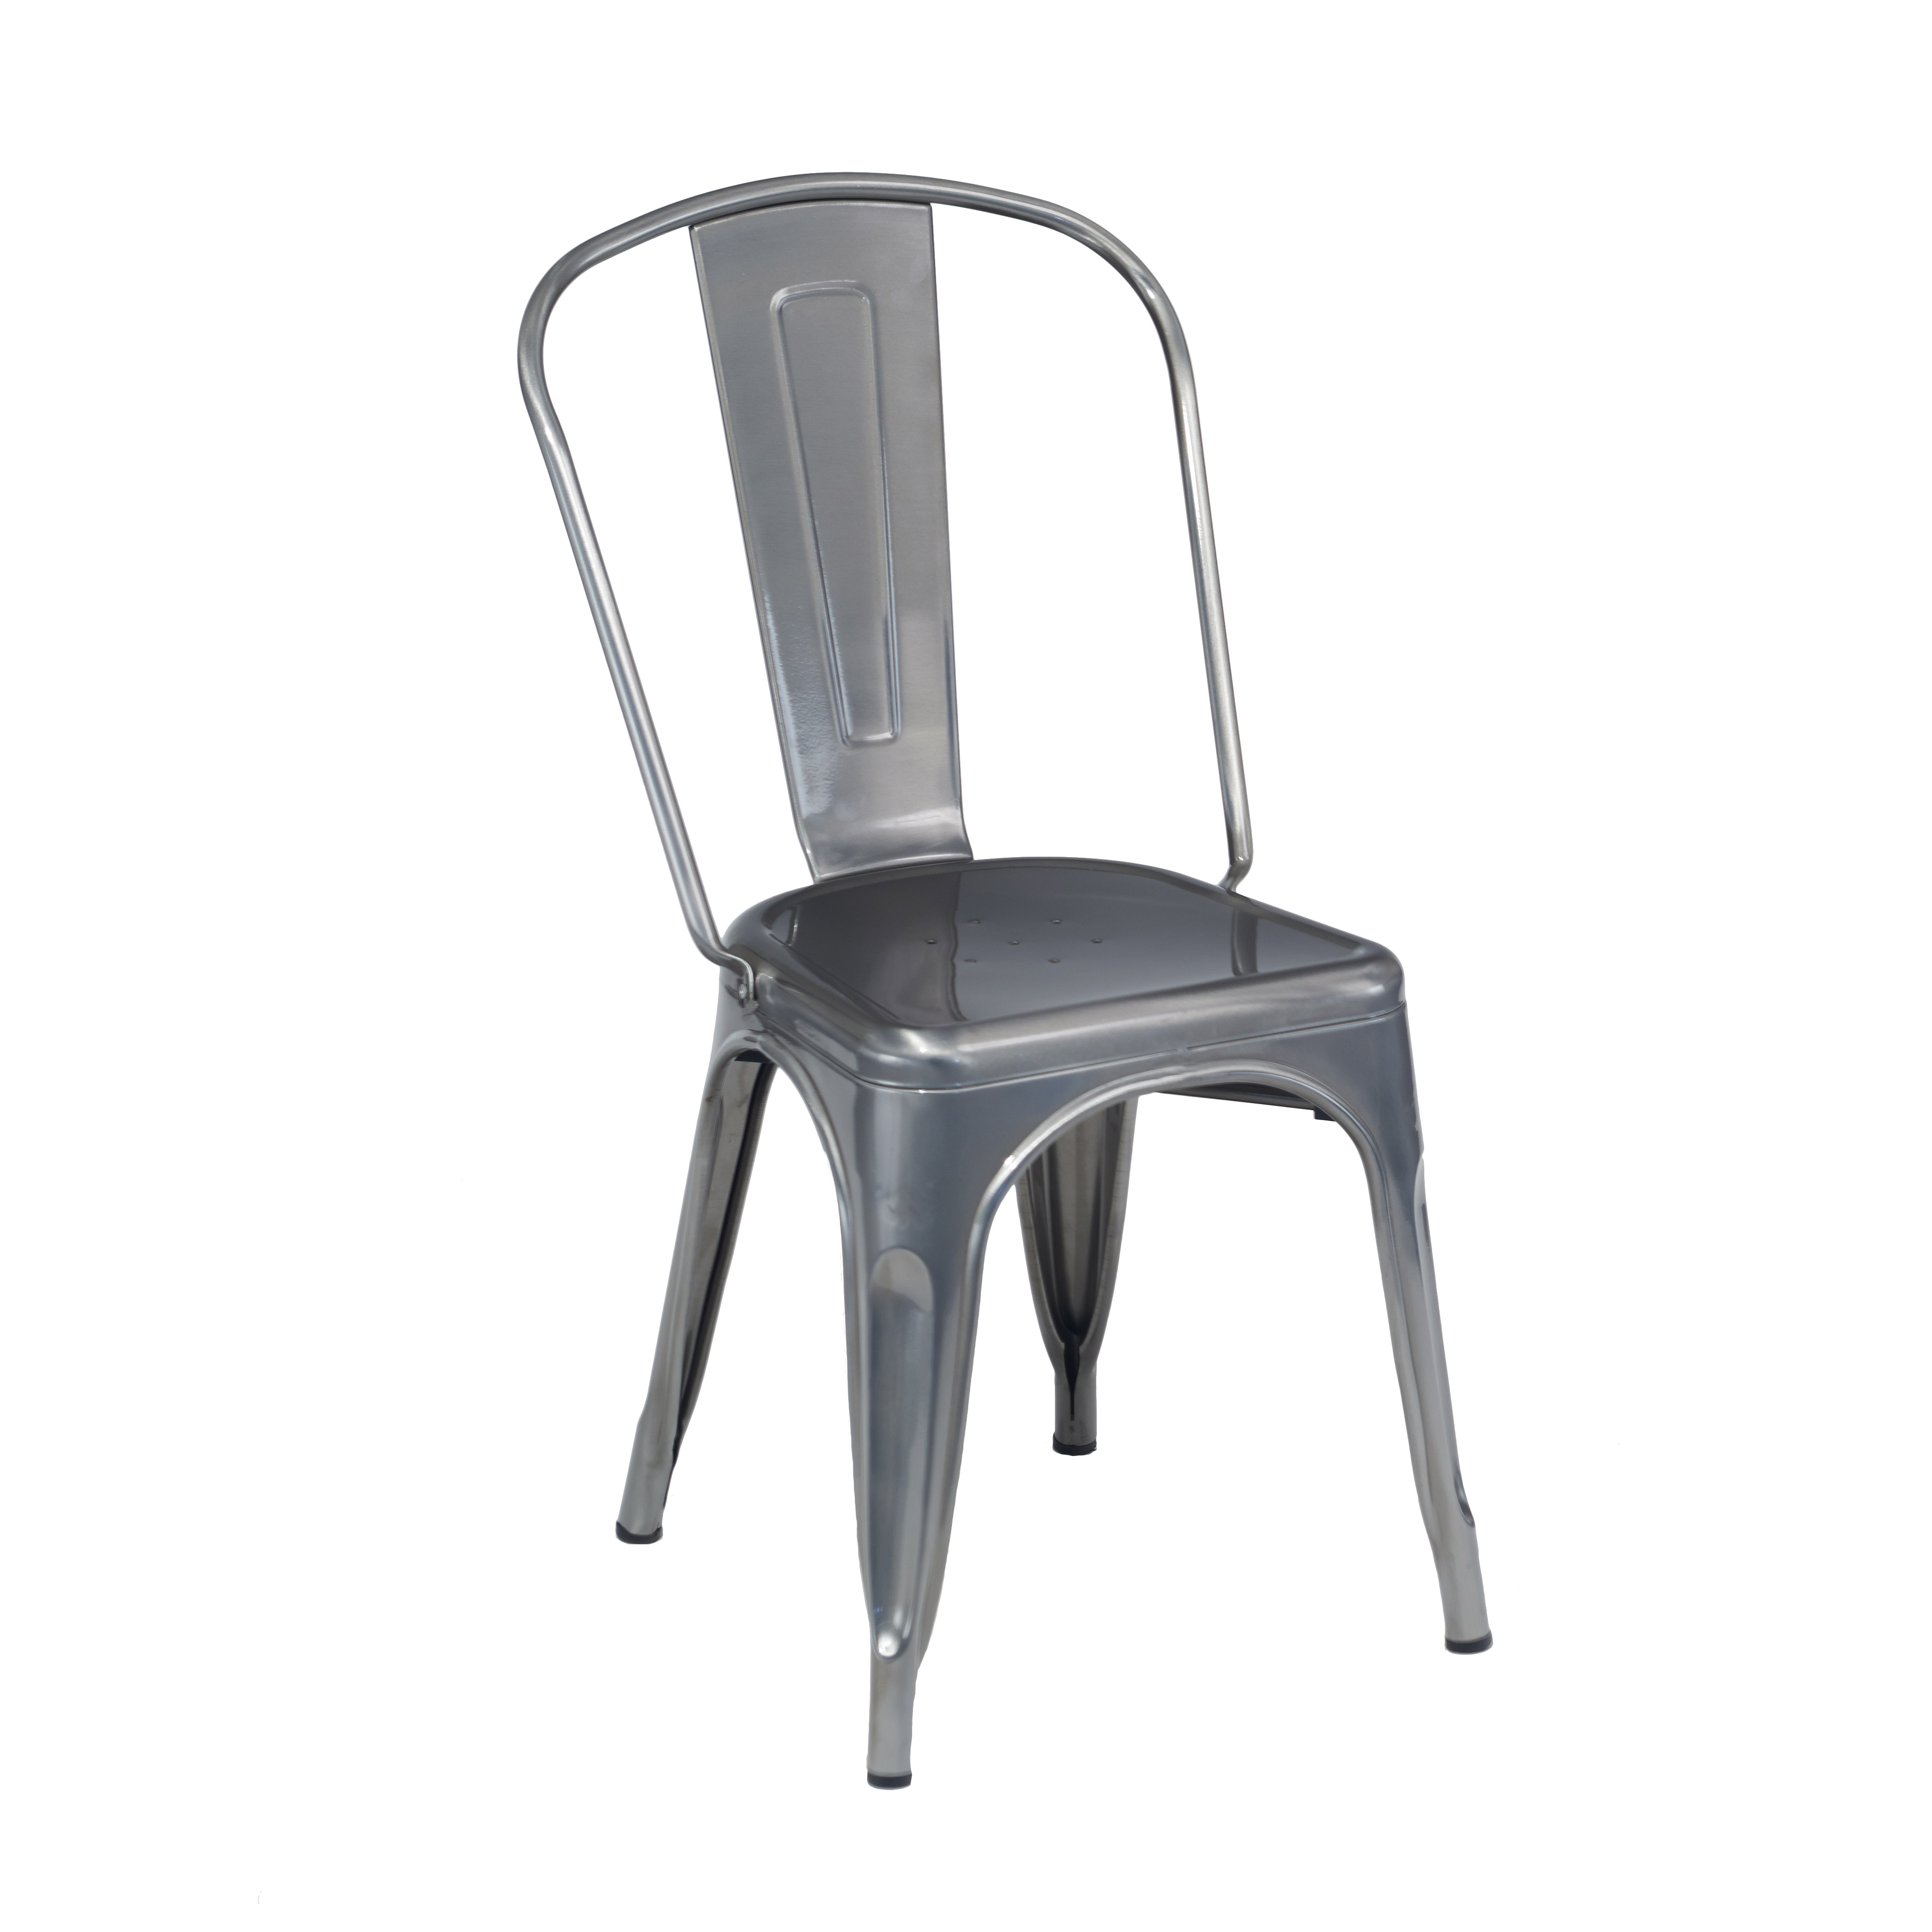 G & A Commercial Seating 530 chair, side, indoor